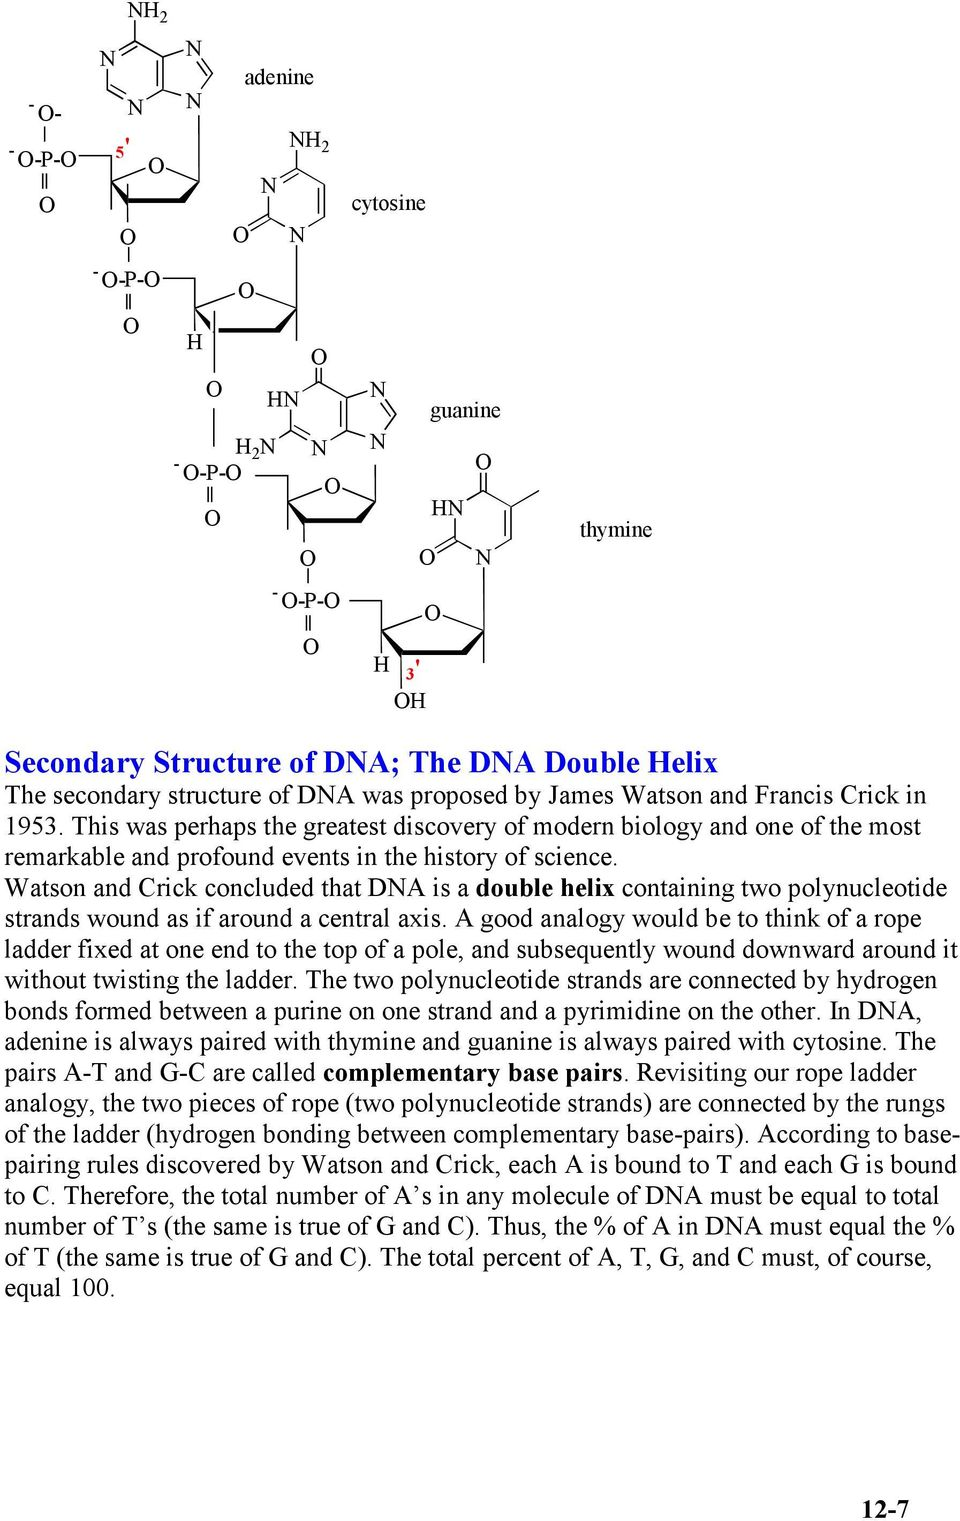 Watson and Crick concluded that DA is a double helix containing two polynucleotide strands wound as if around a central axis.